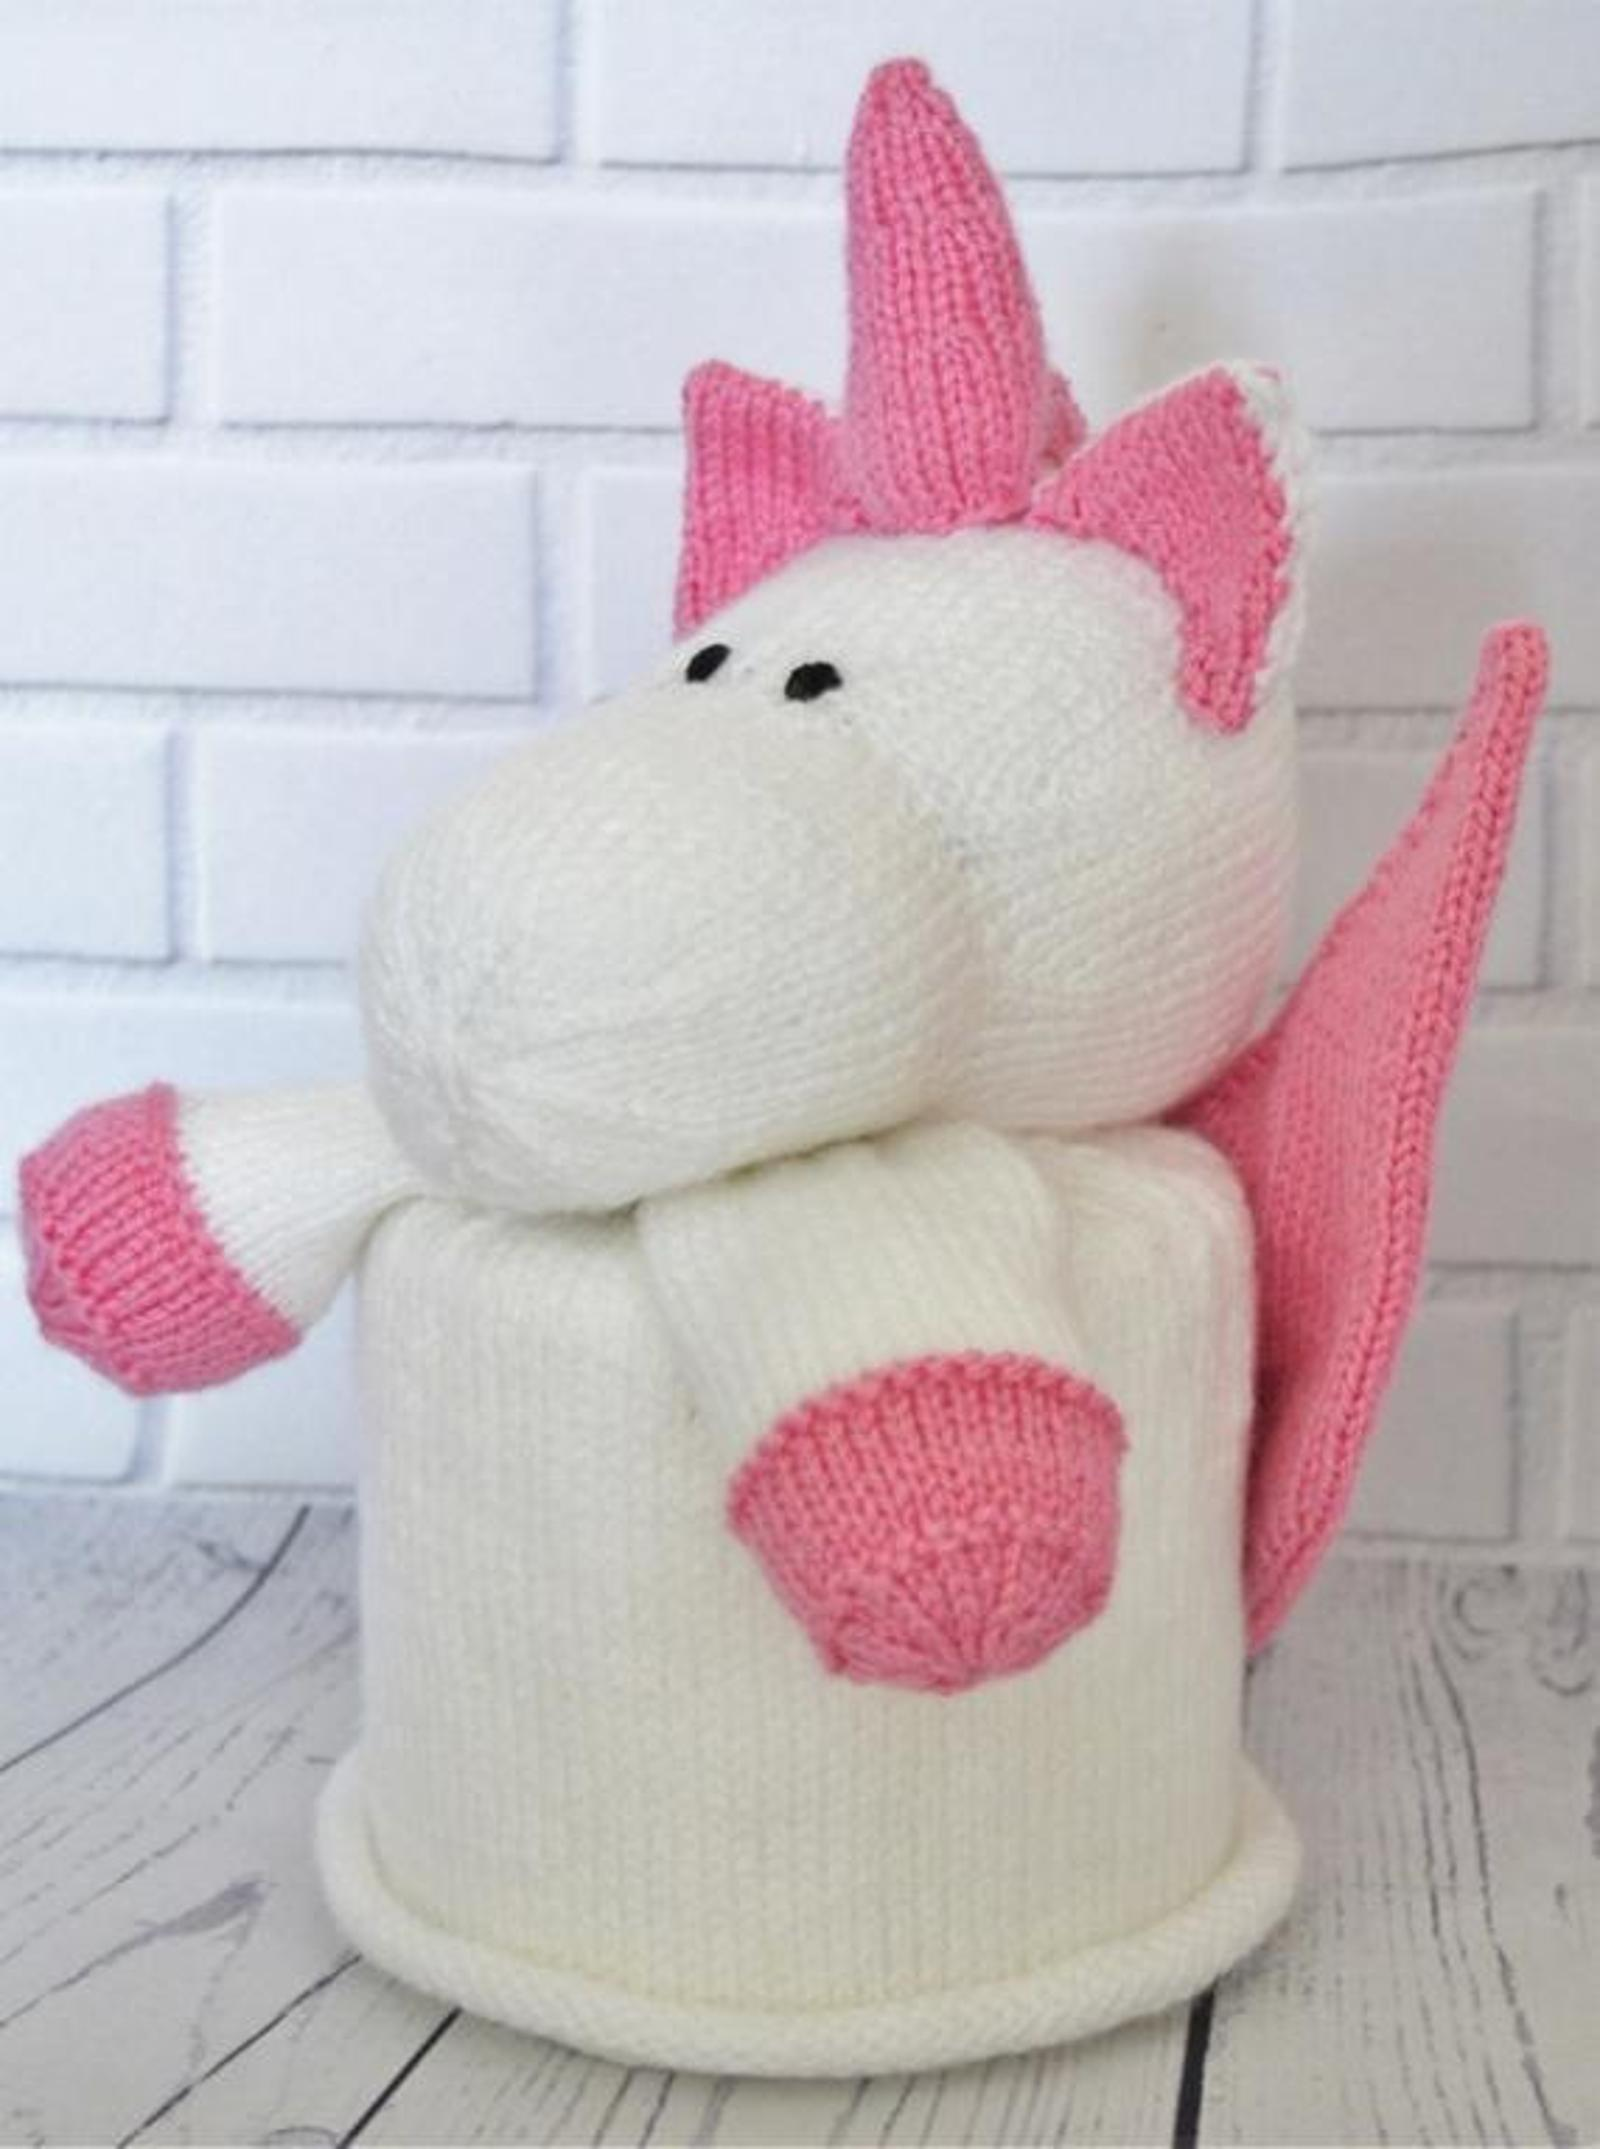 Unicorn Toilet Roll Cover Knitting Pattern